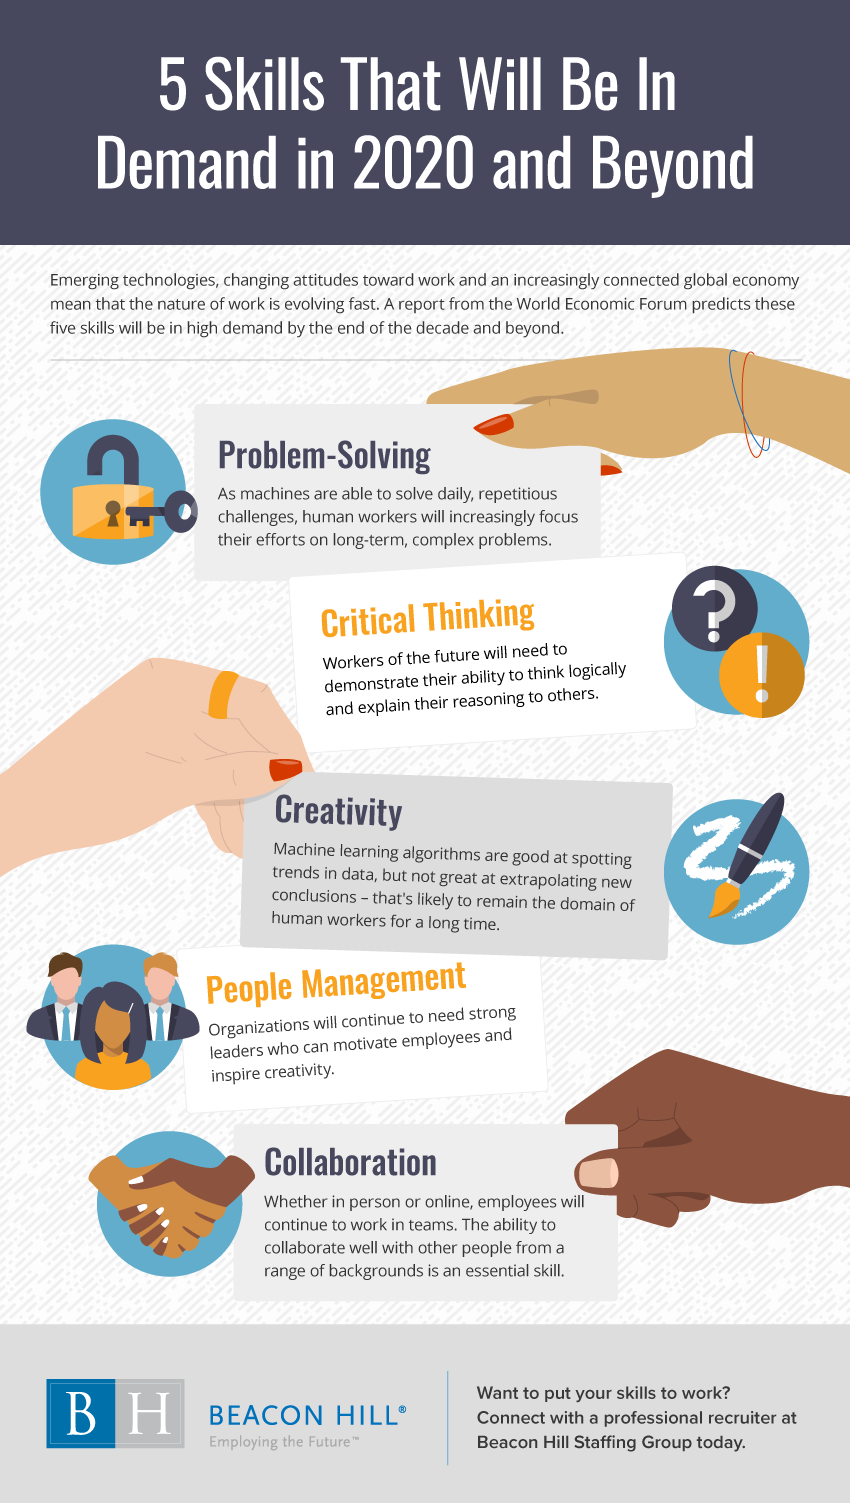 5 Skills That Will Be In Demand in 2020 and Beyond #infographic #Jobs #Skills #Jobs Demand